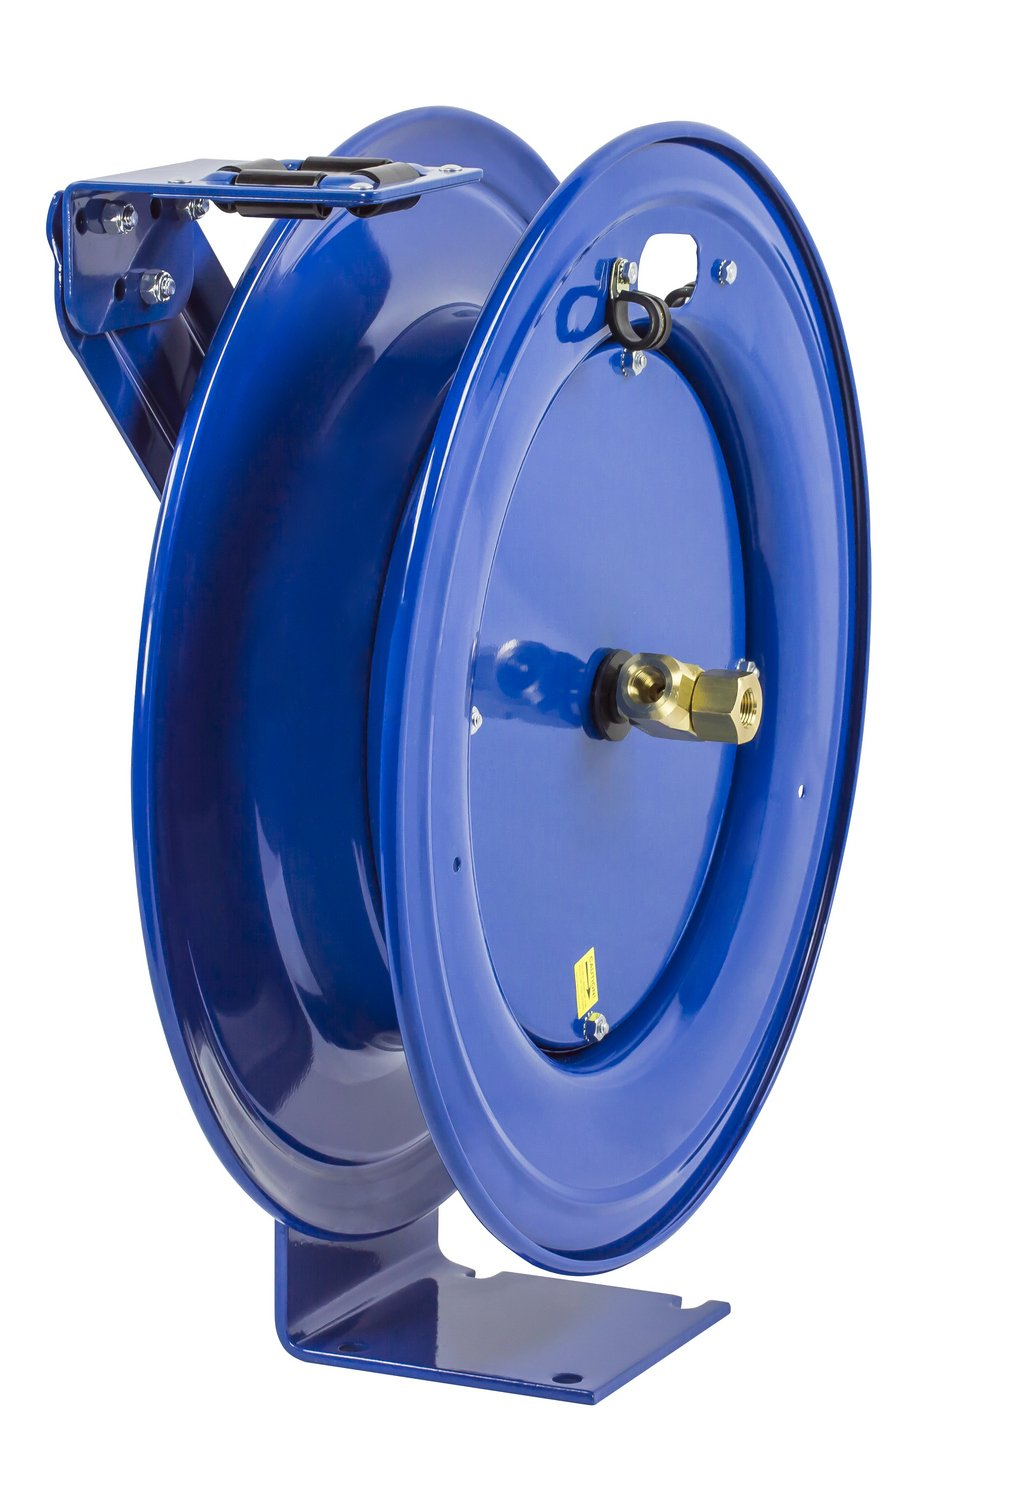 50 hose capacity less hose Coxreels HPL-N-150 Heavy Duty Spring Rewind Hose Reel for grease//hydraulic oil: 1//4 I.D. 5000 PSI 50/' hose capacity